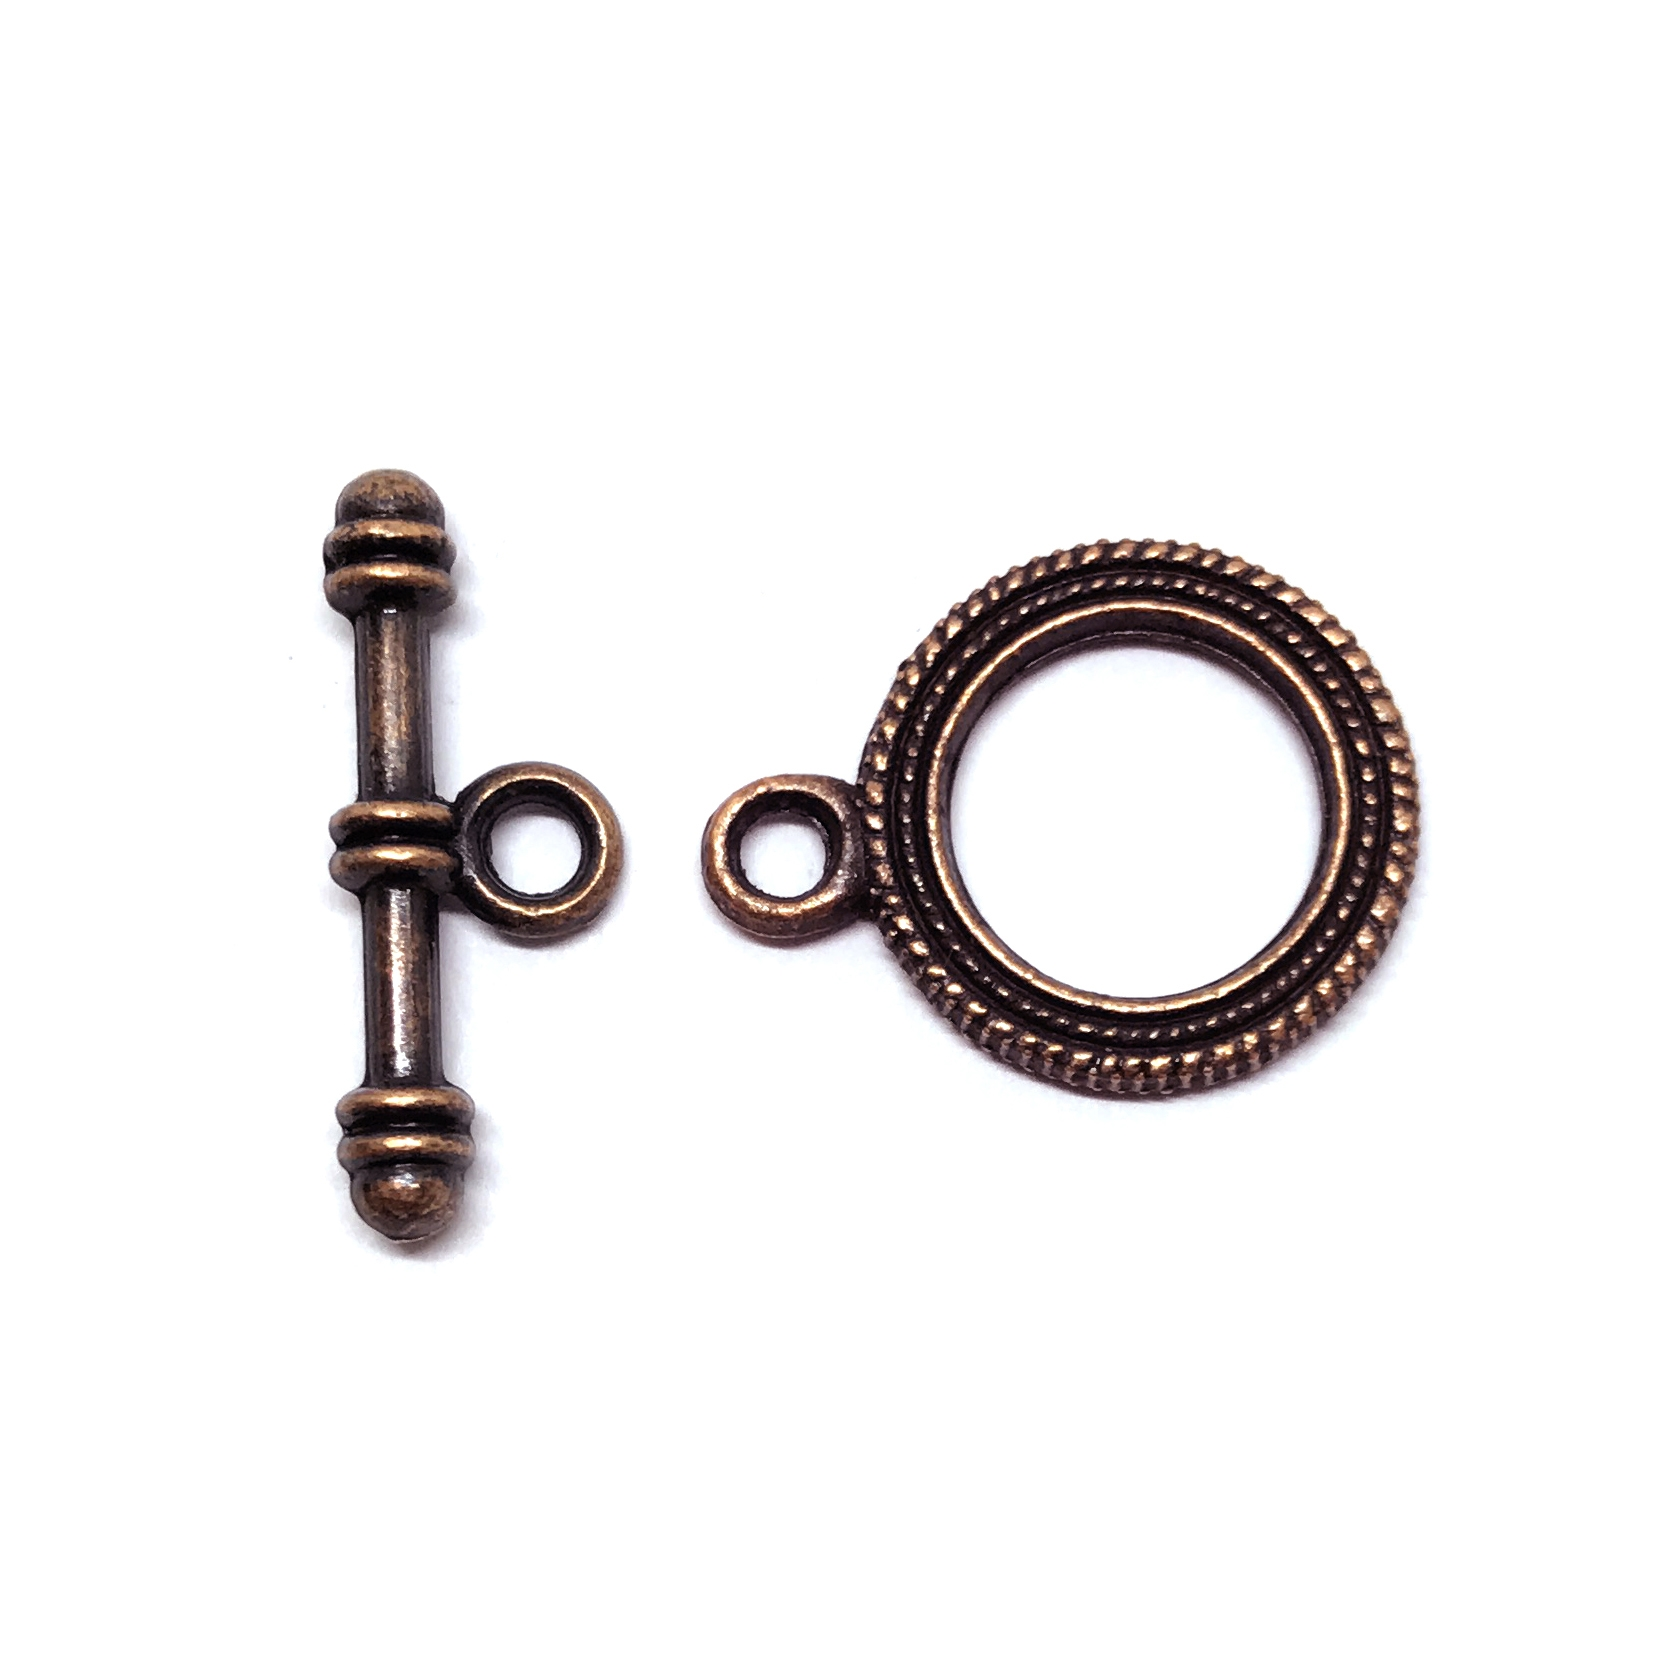 toggle clasp, antique copper, clasps, 01544, jewelry clasps, jewelry making supplies, jewelry parts, vintage jewelry supplies, US made jewelry supplies, nickel free jewelry supplies,  22mm toggle, bracelet toggle, necklace toggles